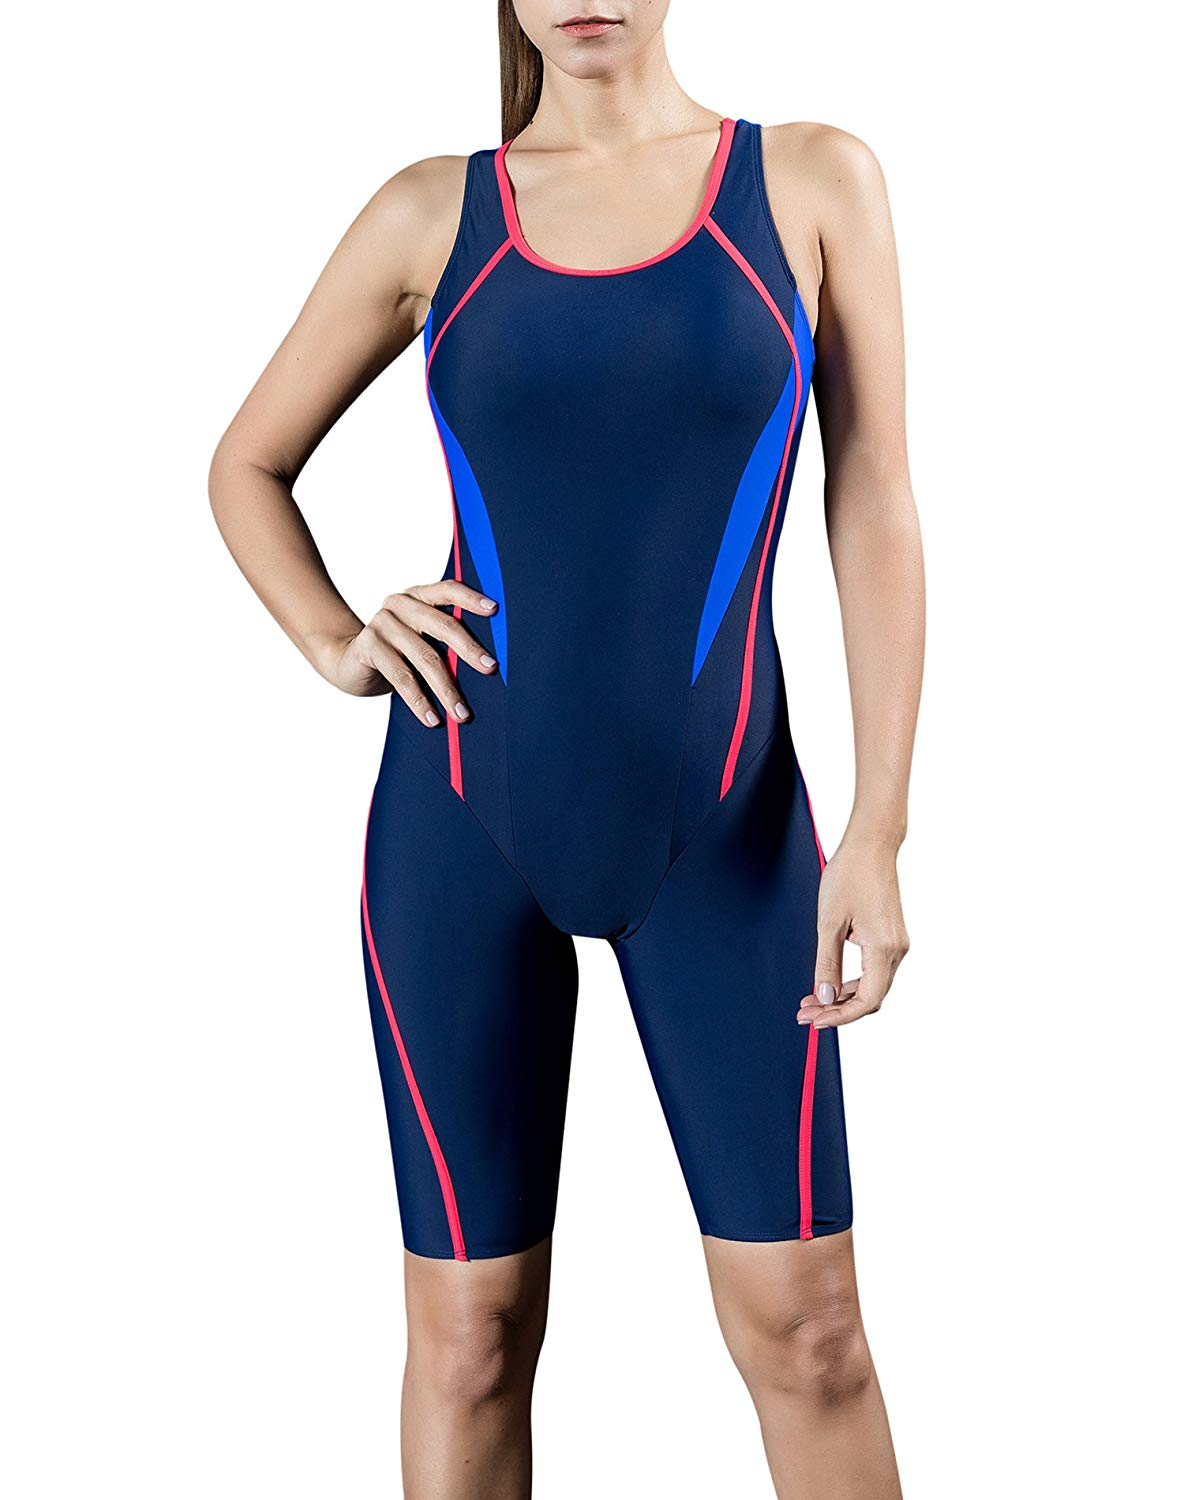 d470a186230c1 Get Quotations · Uhnice Women Unitard Swimwear Surfing Suit Sports One Piece  With Shorts Swimsuit